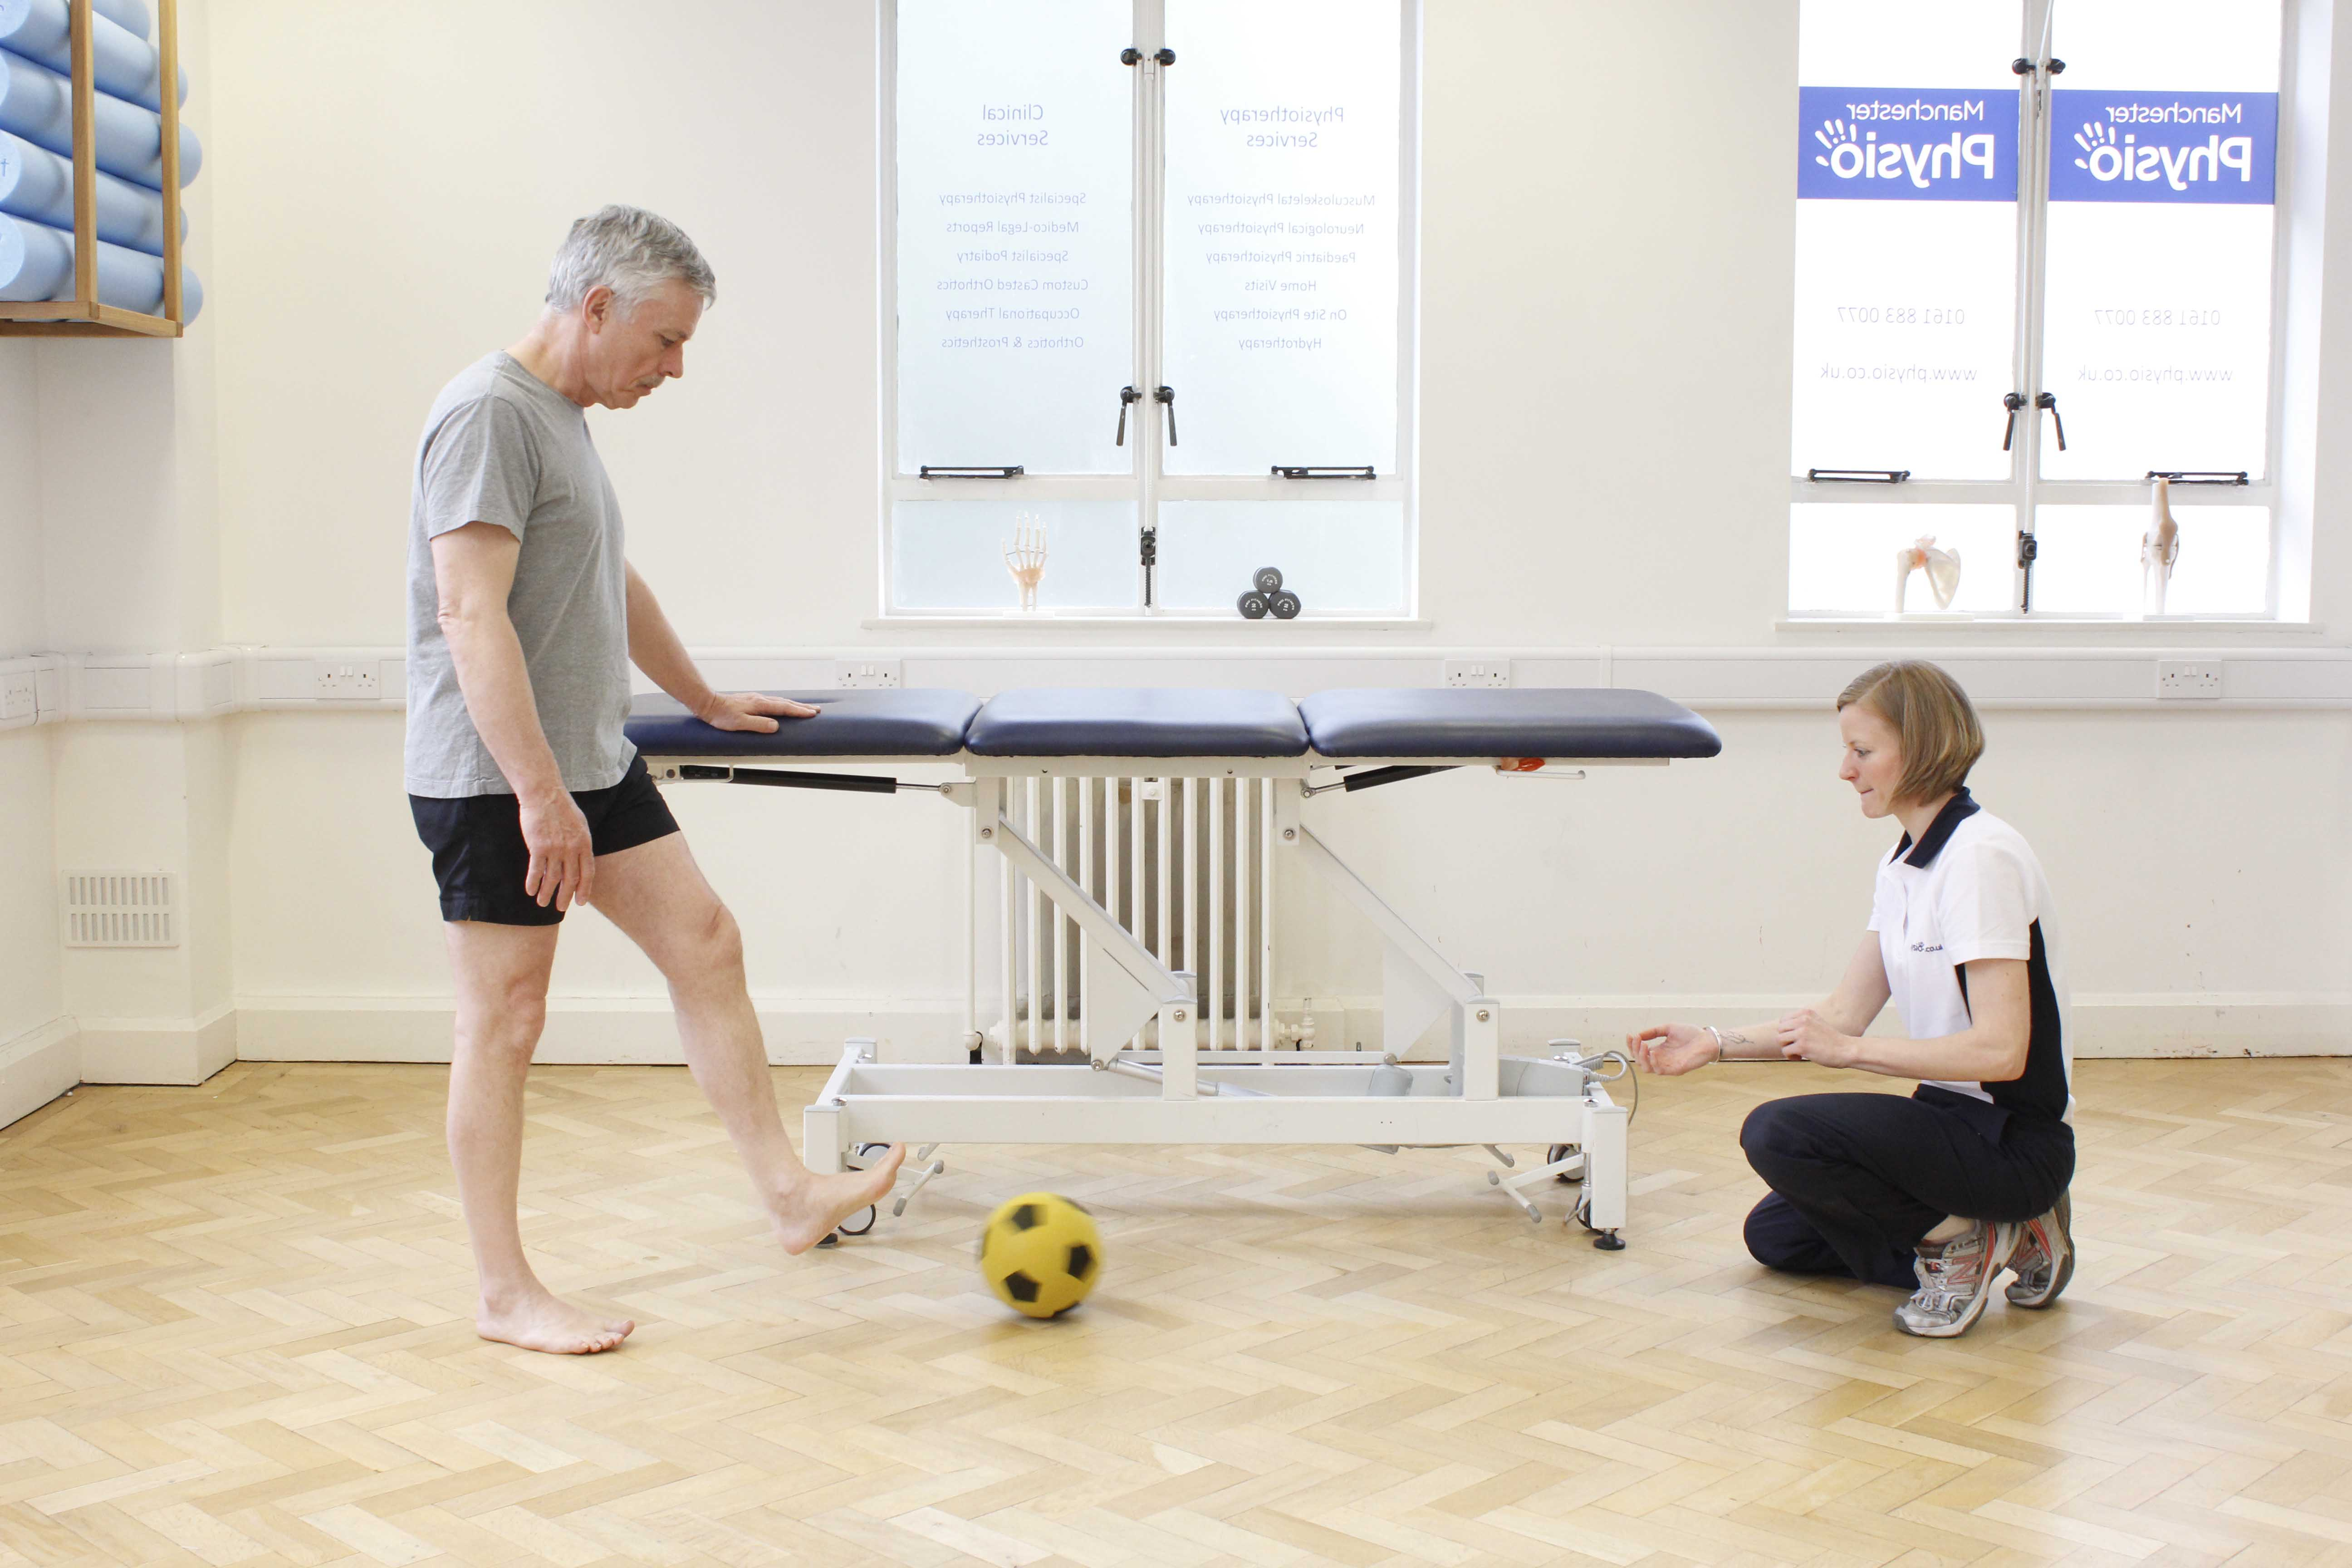 Improving exercises tolerance through progressive physiotherapy exercise plan